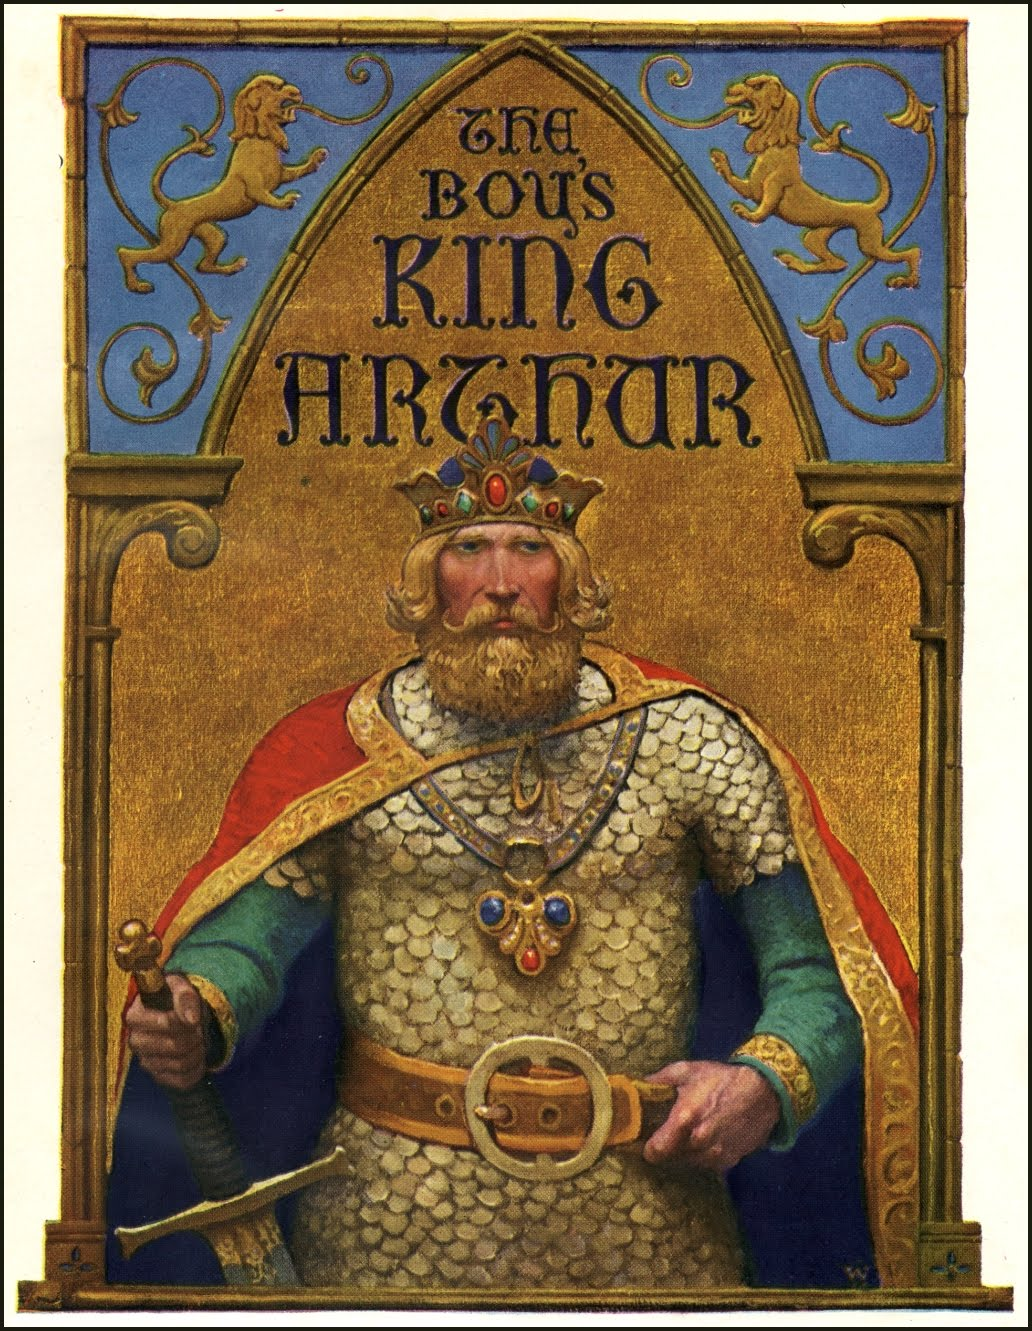 king arthur The round table is finally constructed and arthur's (charlie hunnam) closest friends are knighted — and the sequels could've further expanded upon the legend of king arthur in exciting ways.